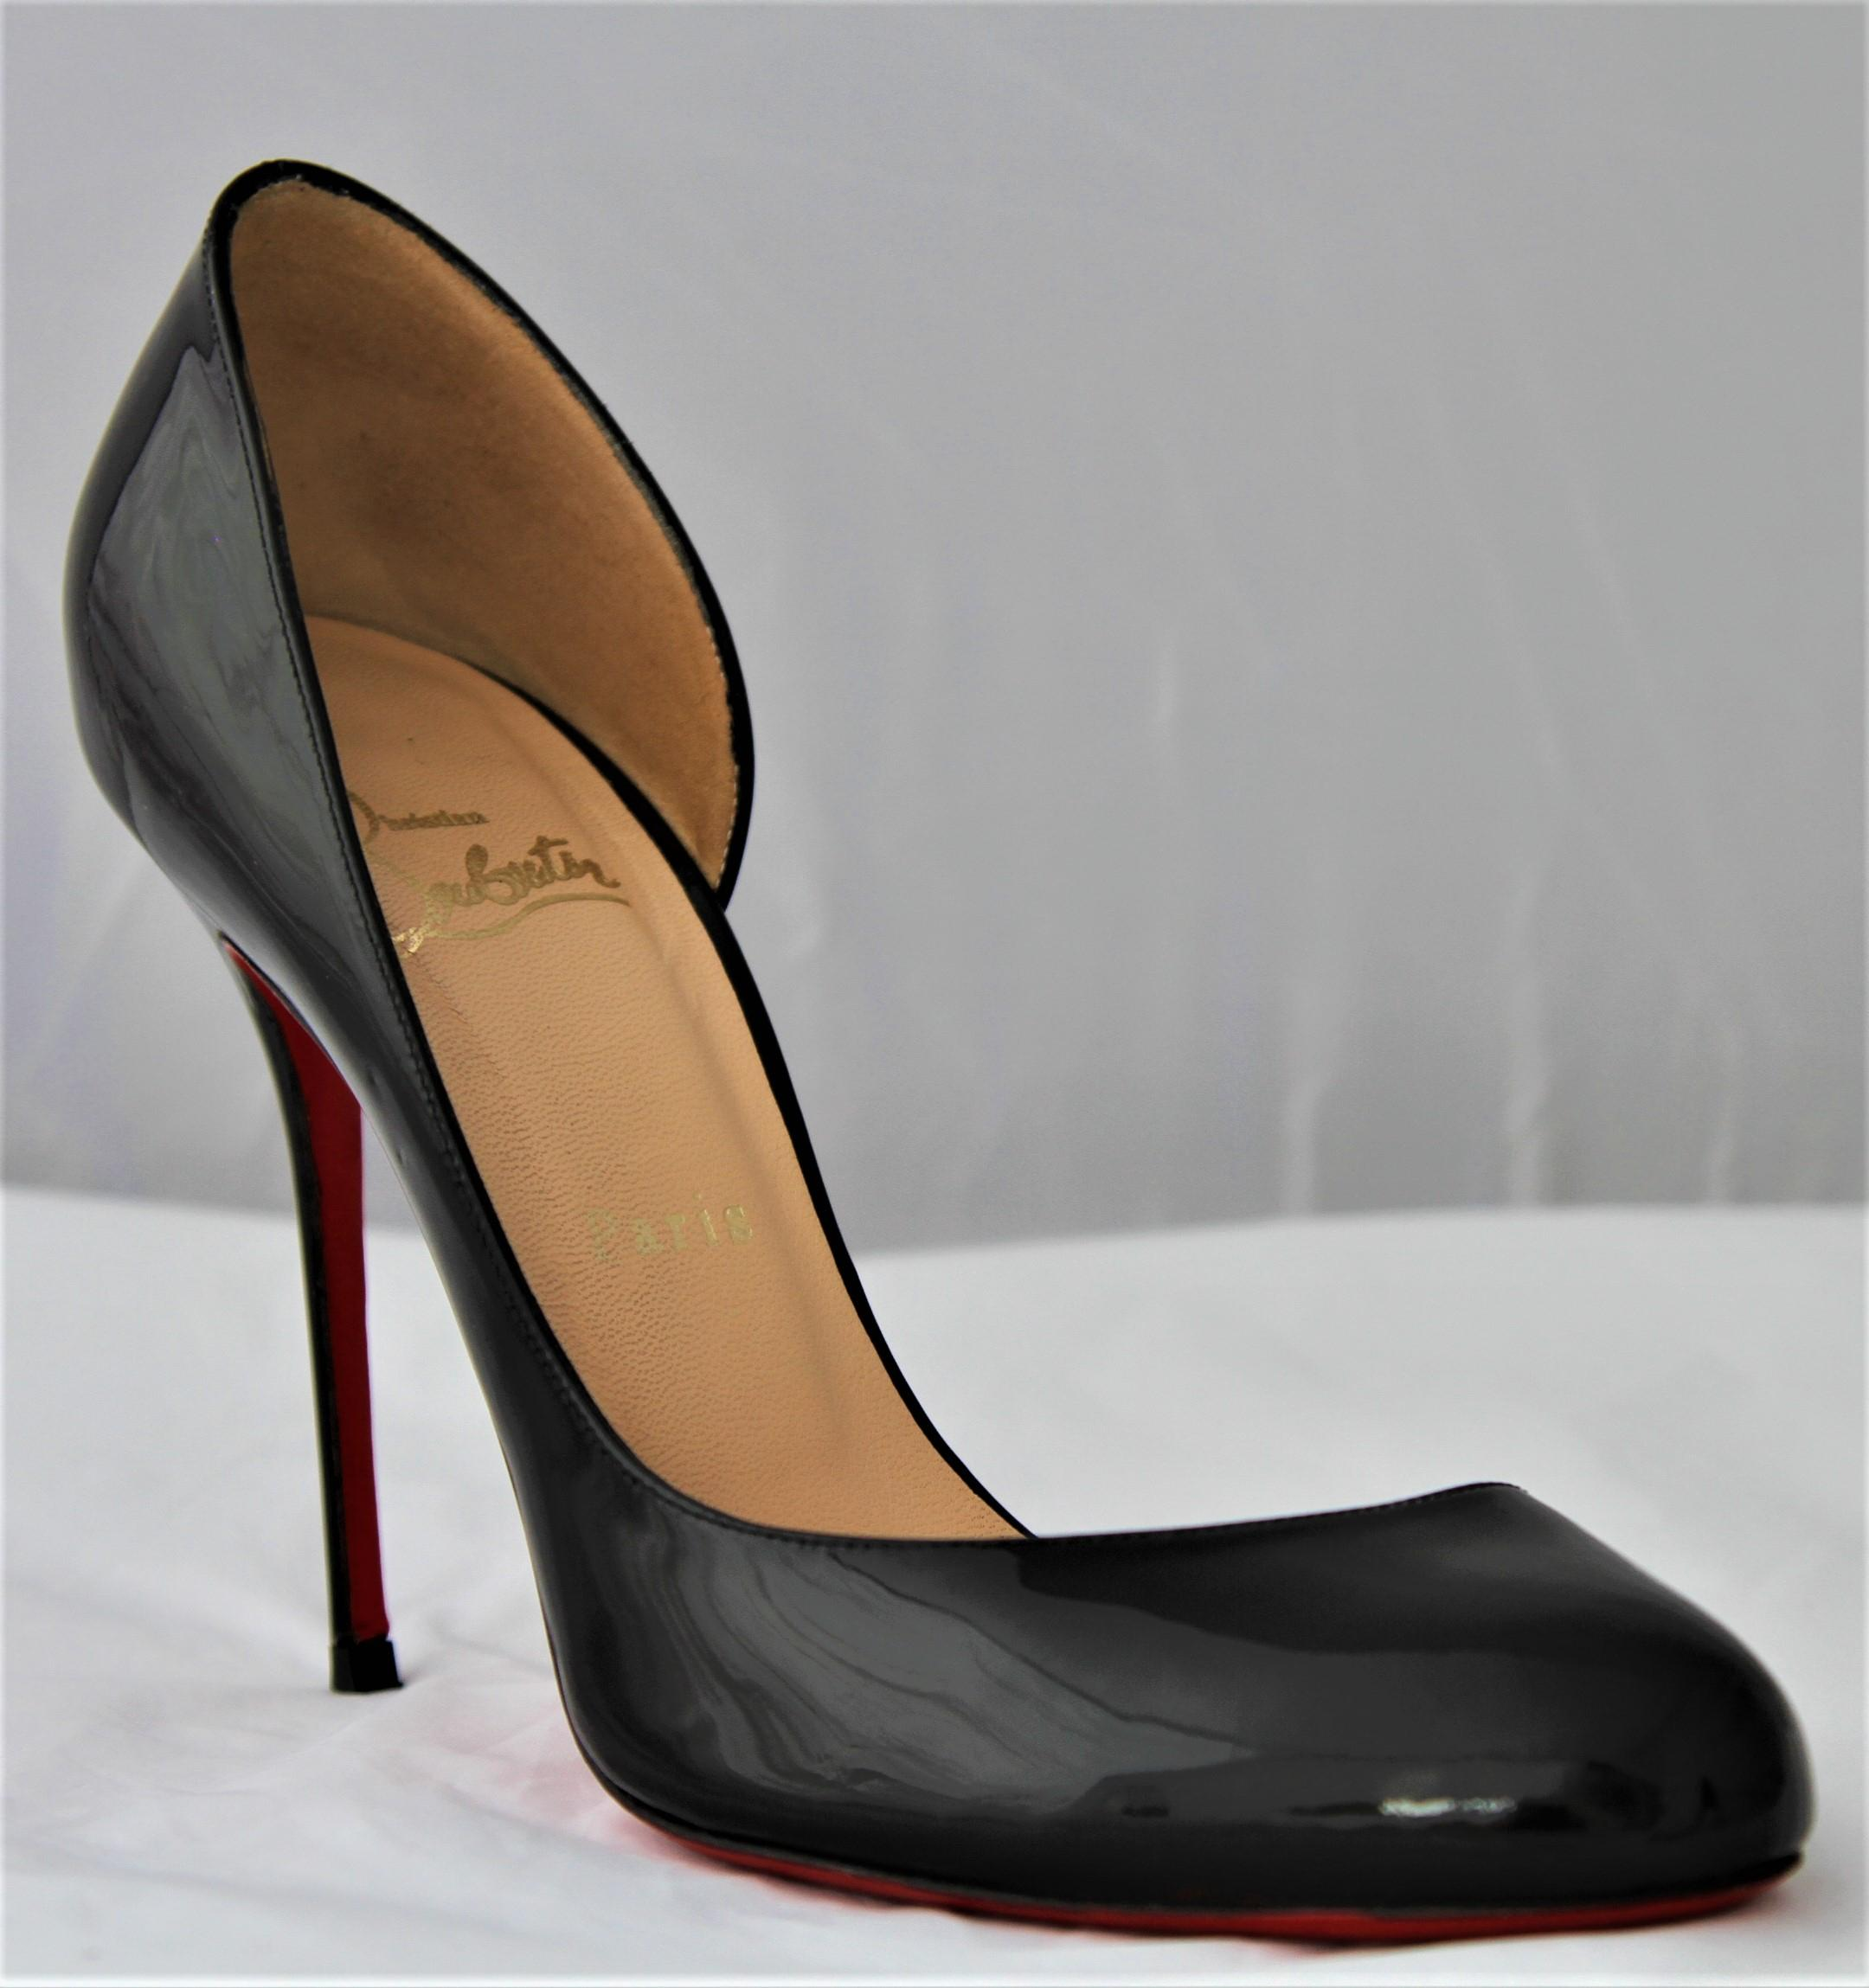 111d8faf546 ... Christian Louboutin Black Helmour 39 39 39 It Patent Leather 100 High  Heel Red Sole Lady ...